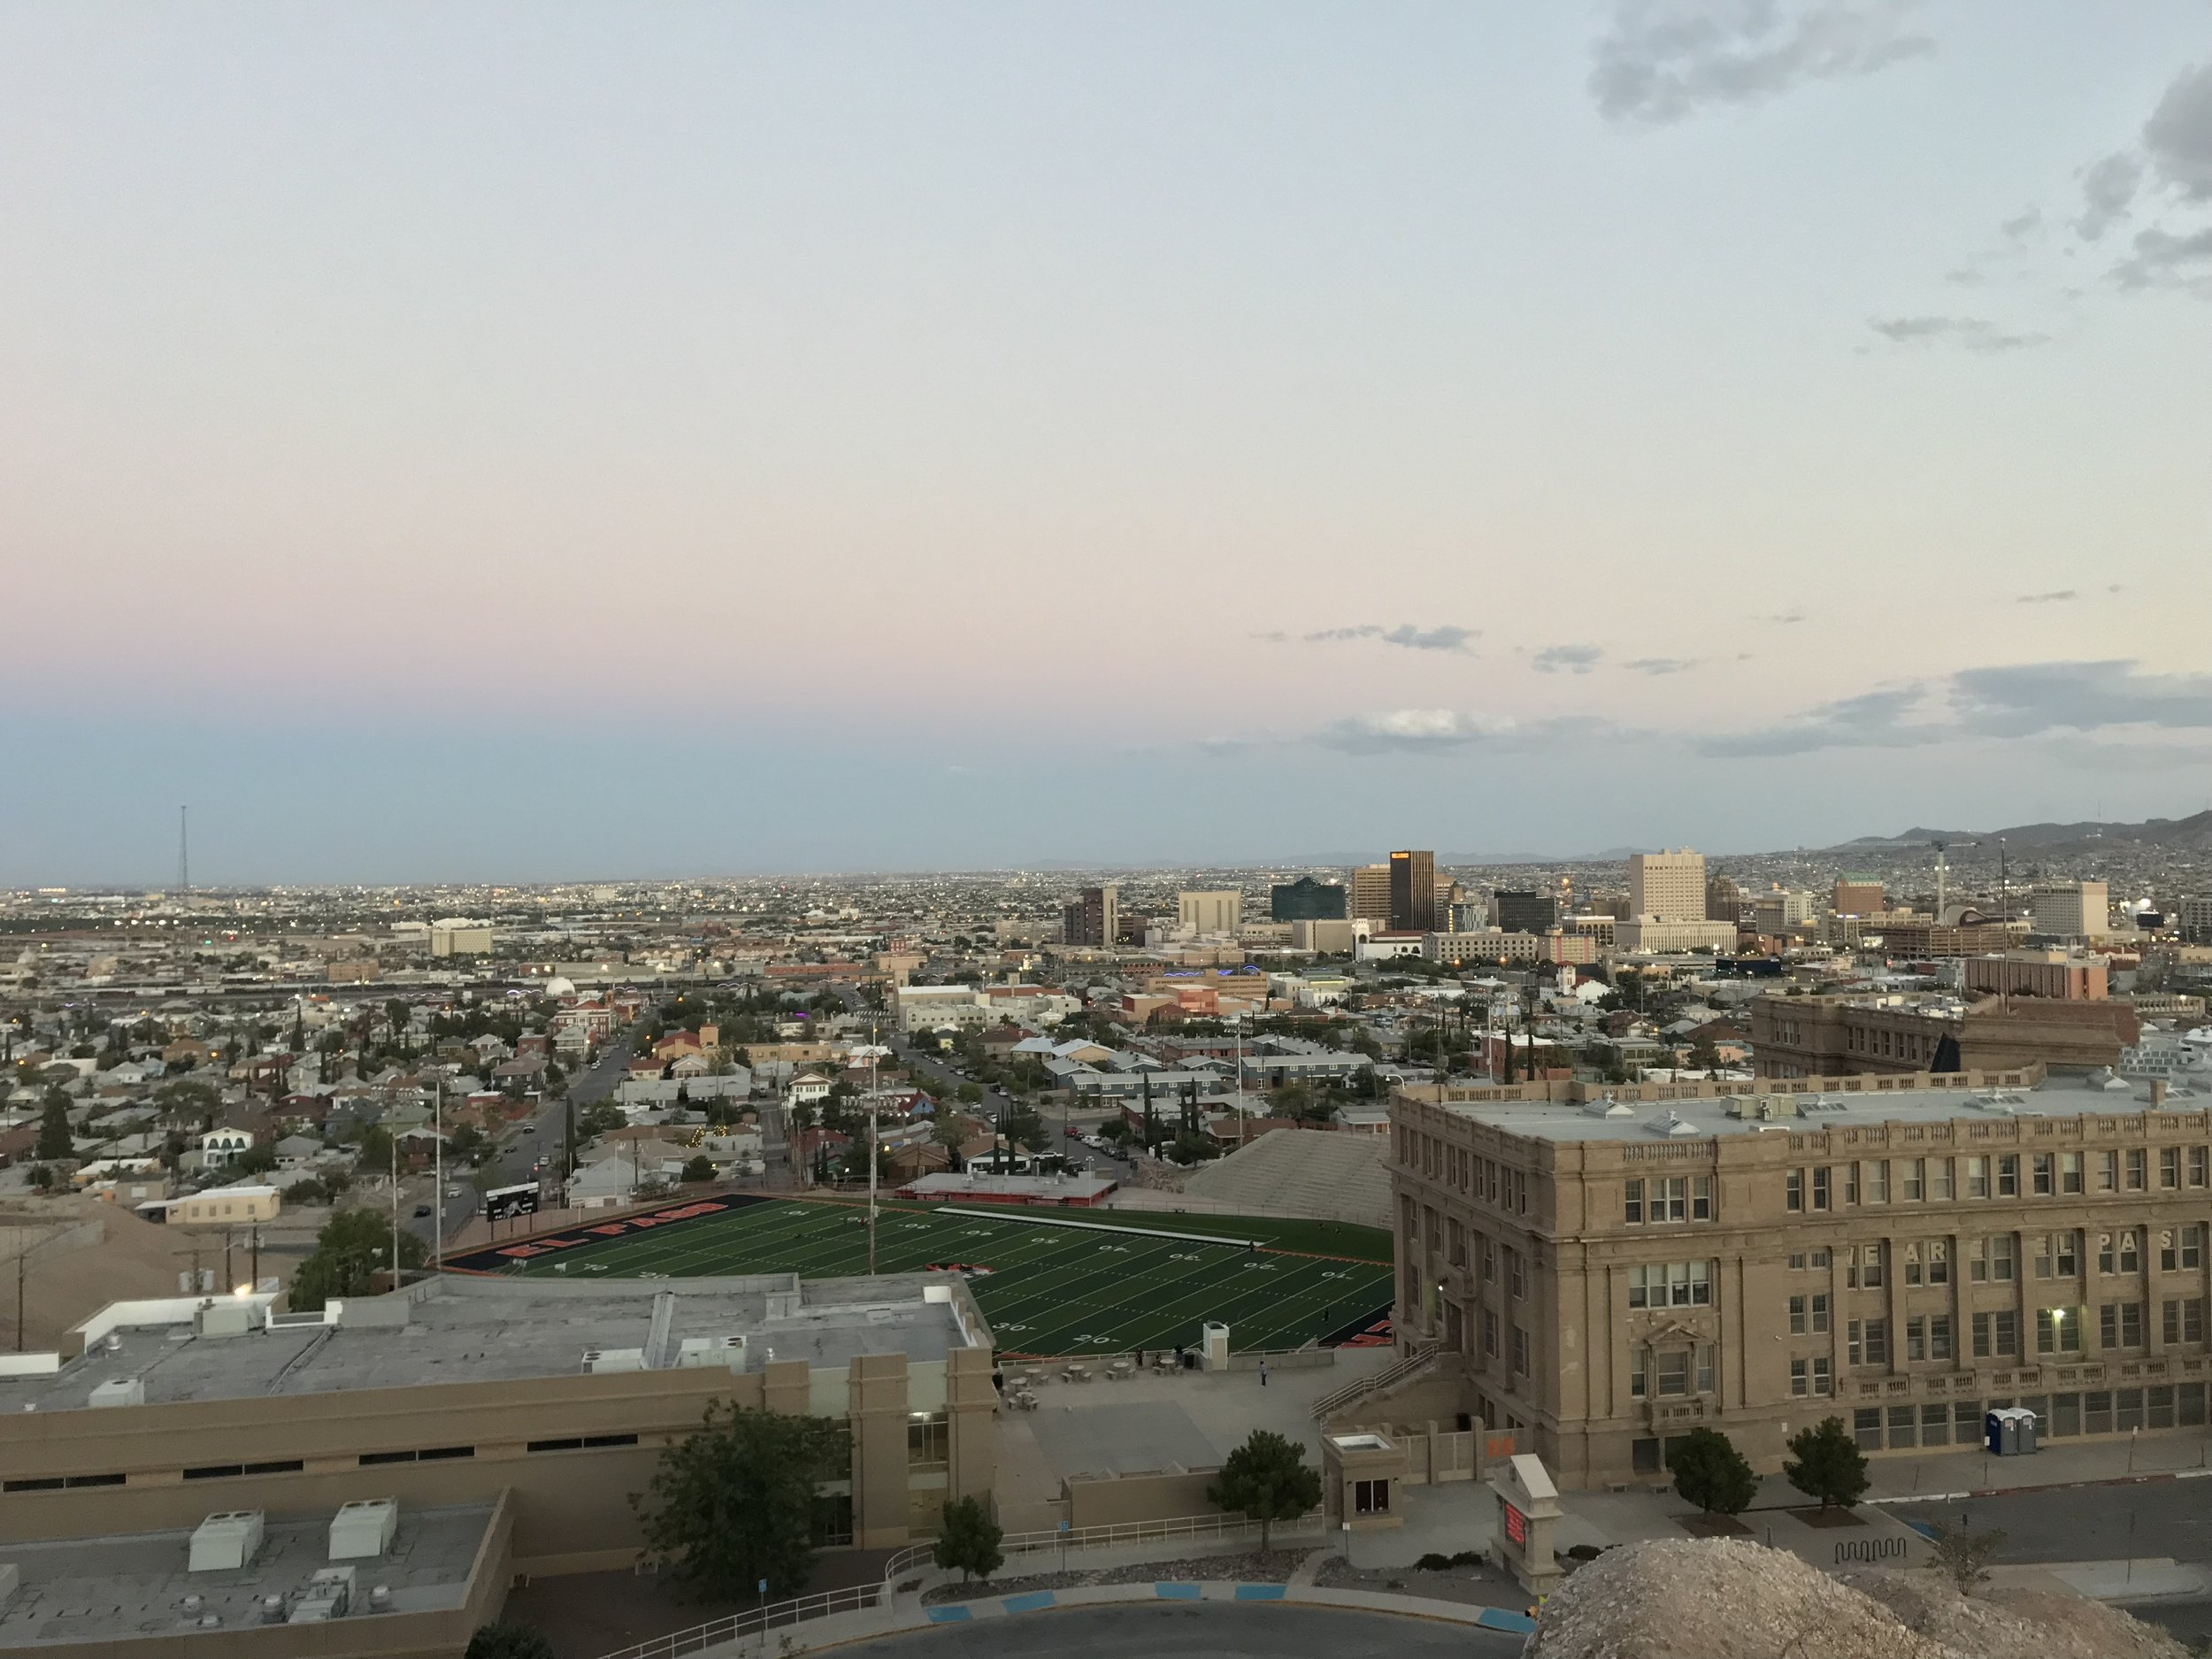 The view at the edge of the park looking southeast. You can see the high school football field and even Mexico past downtown El Paso.